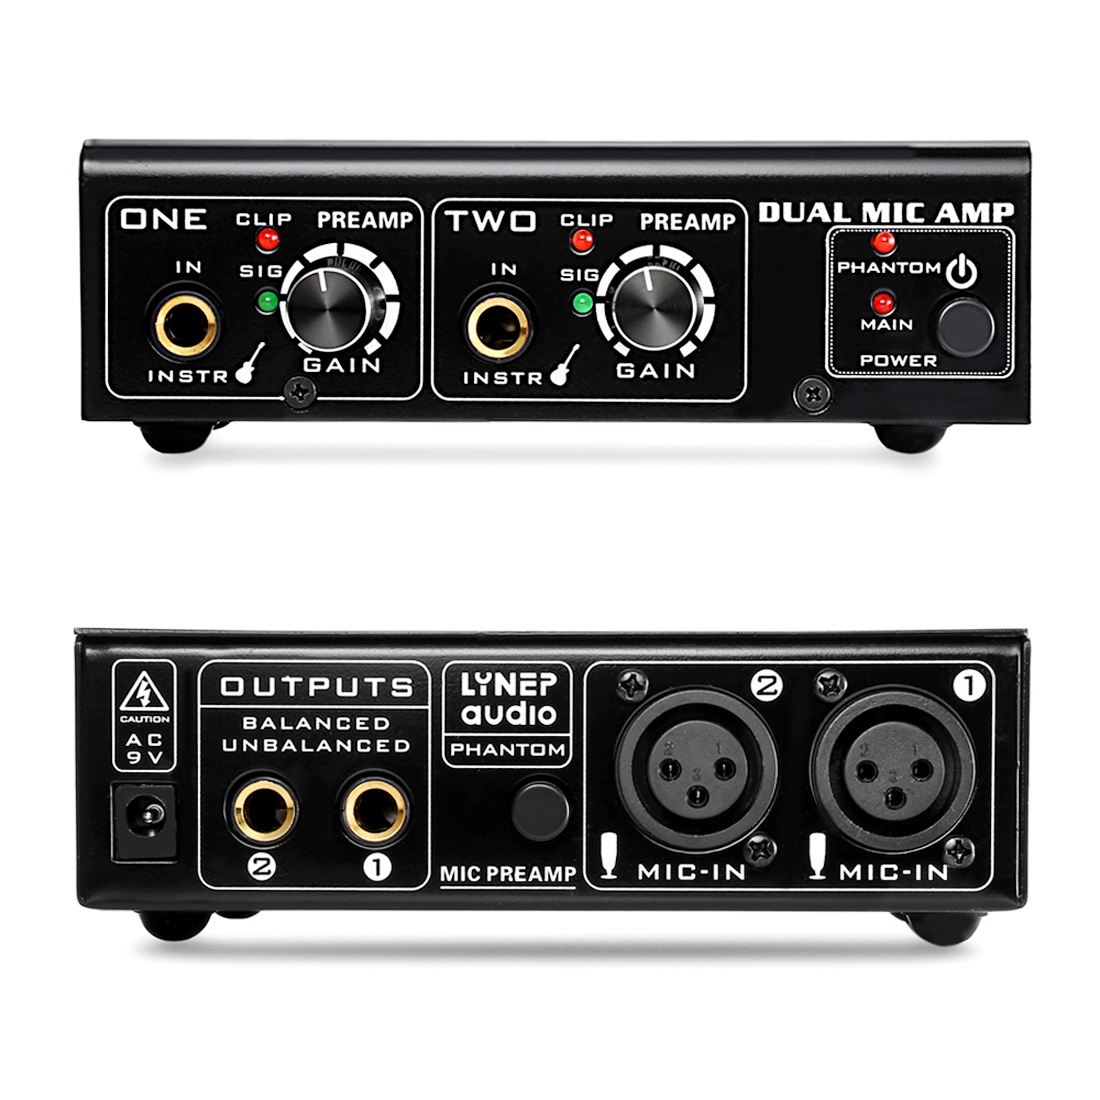 Linepaudio A961 2 Channel Microphon End 10 5 2019 1045 Am Mic Condenser Amplifier Nowadays Many Hard Disk Recorders And Computer Audio Interfaces Donat Have Microphone Power Supply